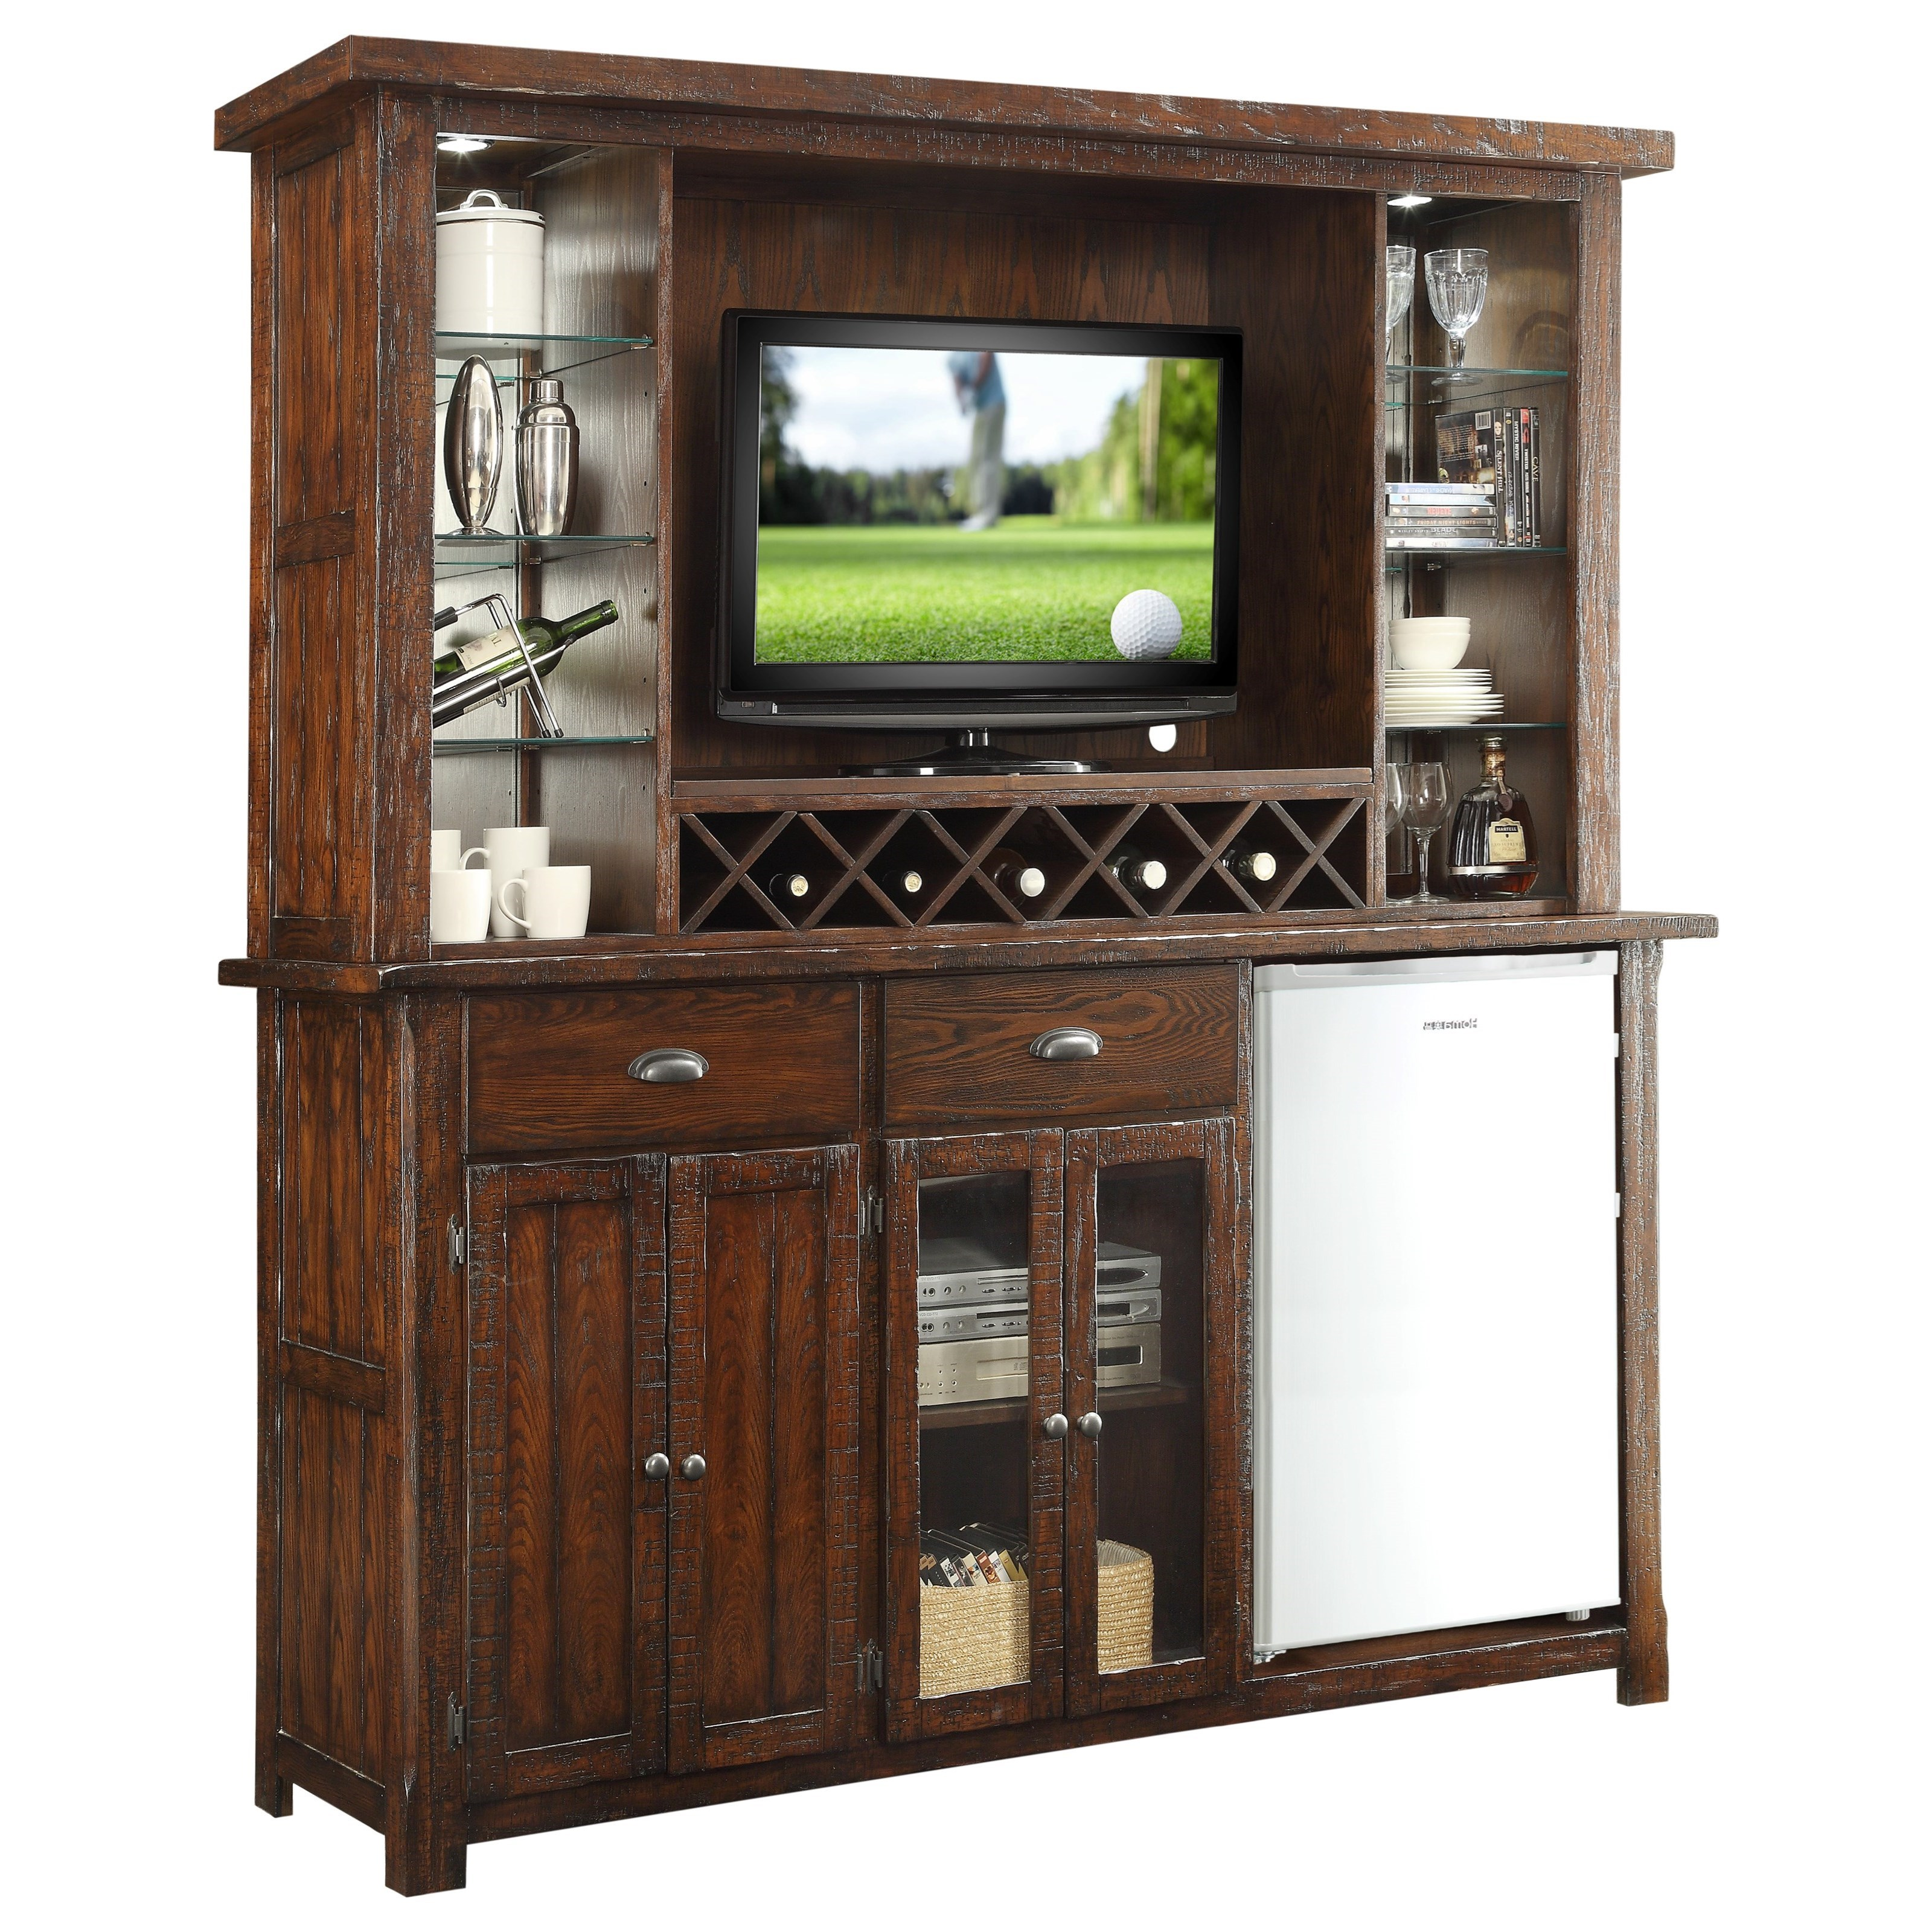 E c i furniture gettysburg gettysburg bar cabinet with for Built in wine bar cabinets